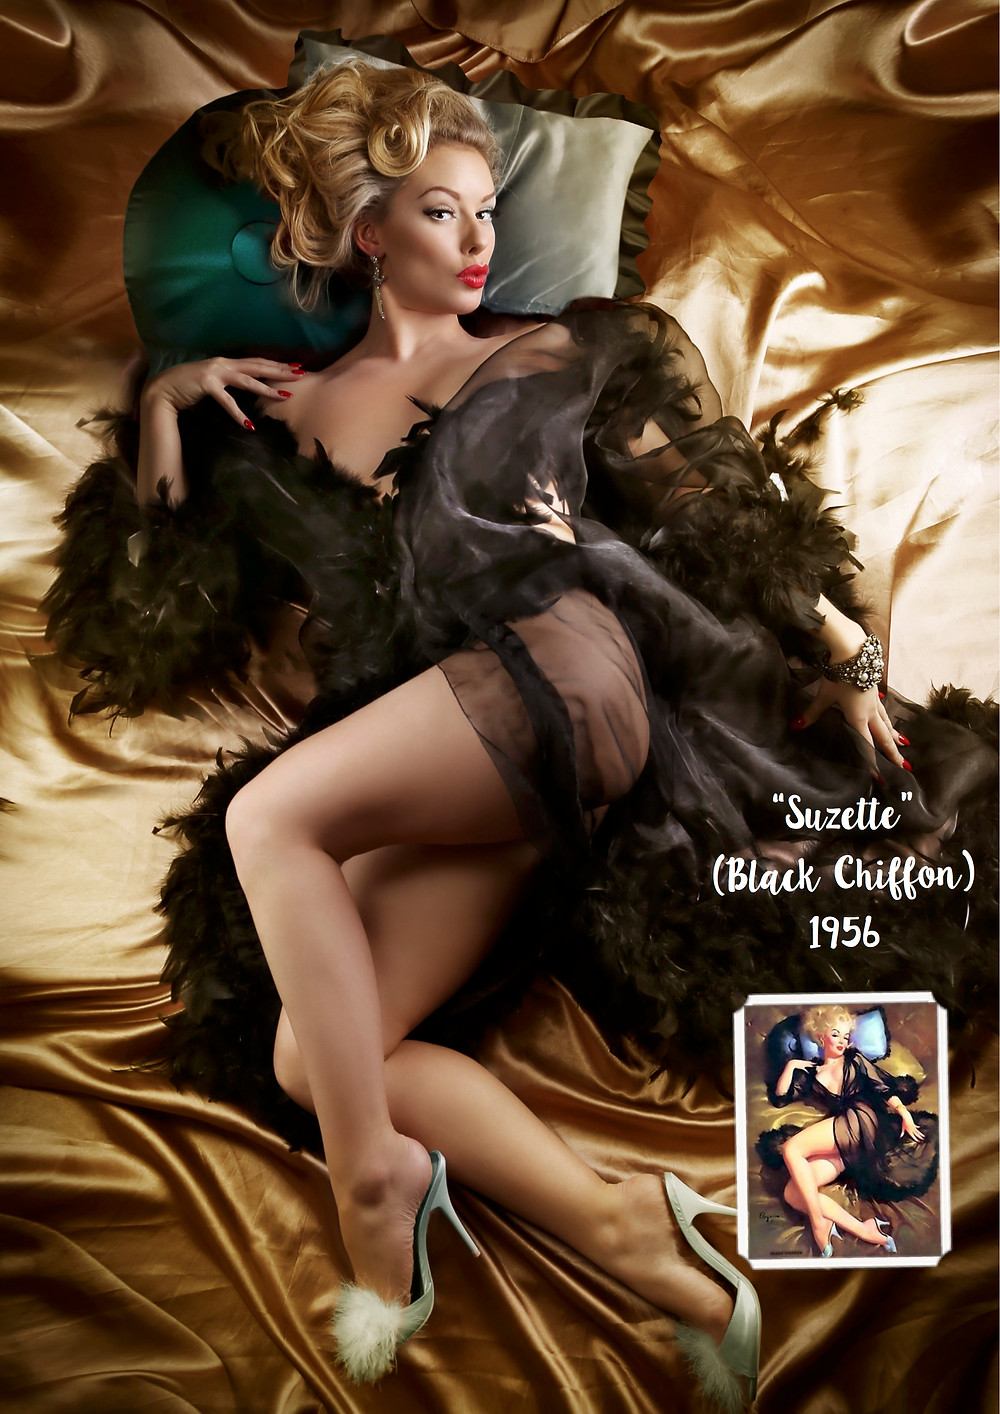 Suzette Black Chiffon 1956 Gil Elvgren inspired recreation pin up art with Heather Valentine Model by Dollhouse Photography | Boudoir Pinup